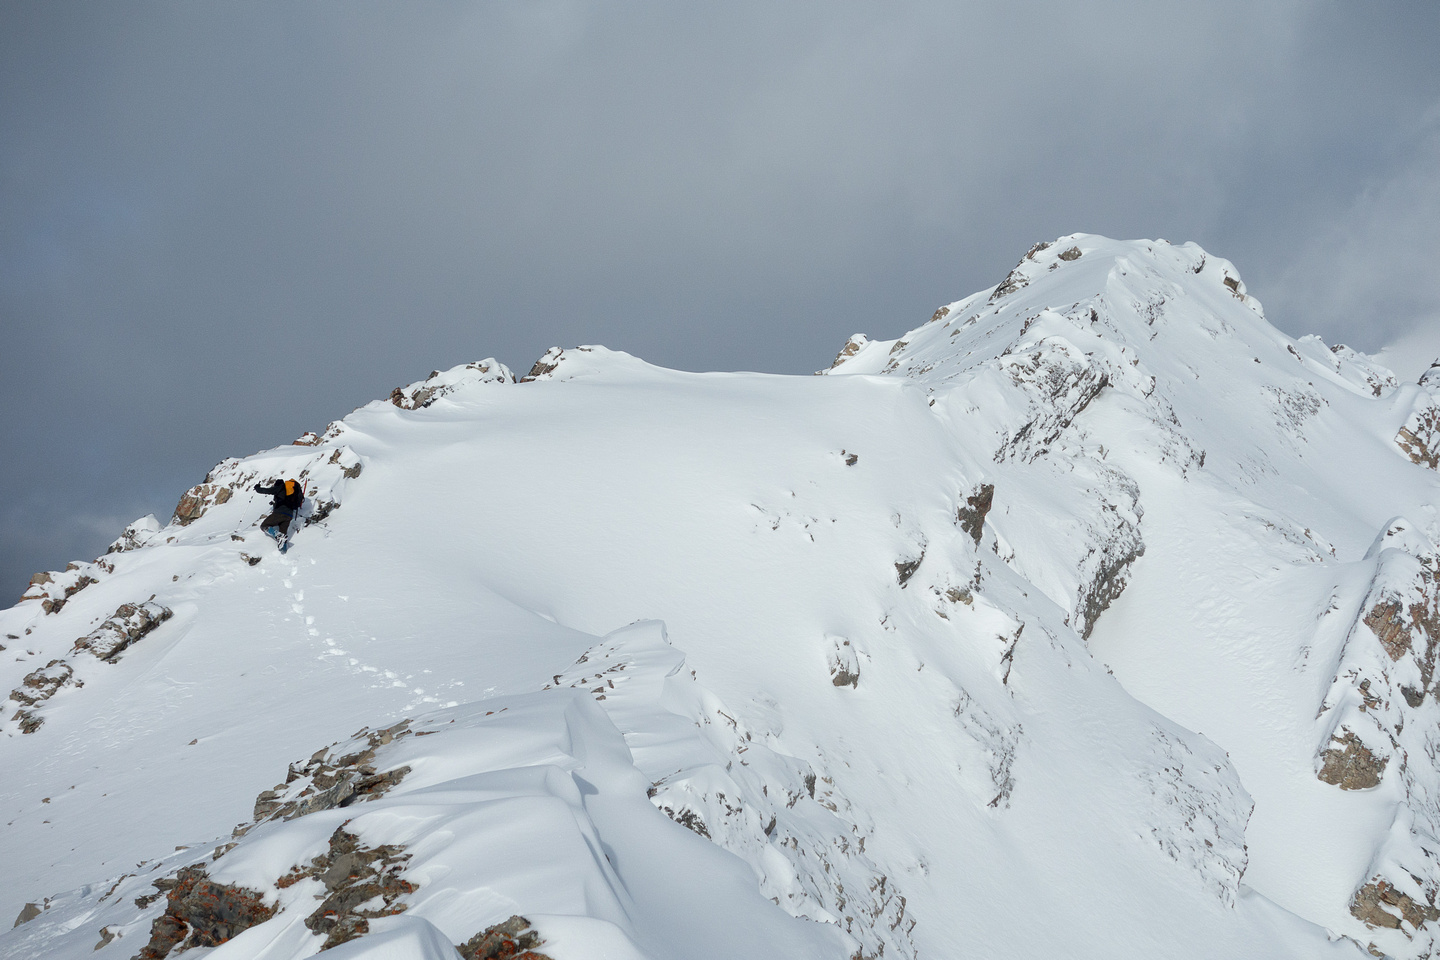 The final stretch to the summit looks dramatic with snow. It wasn't difficult though.